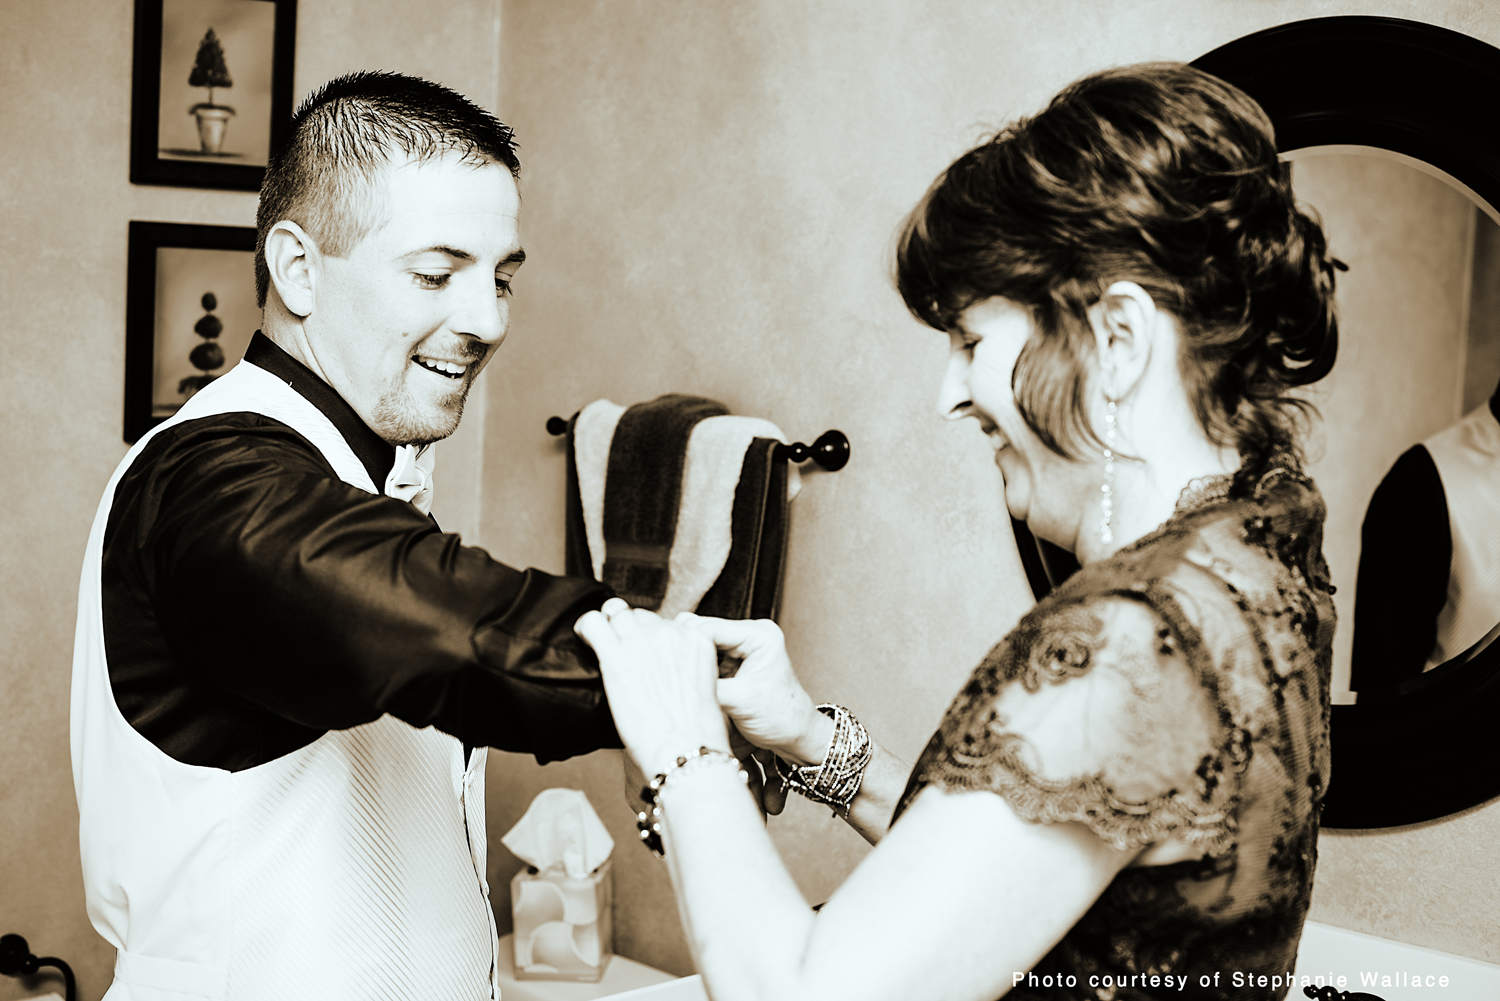 The groom's mother helps him with the cufflinks on his suit.